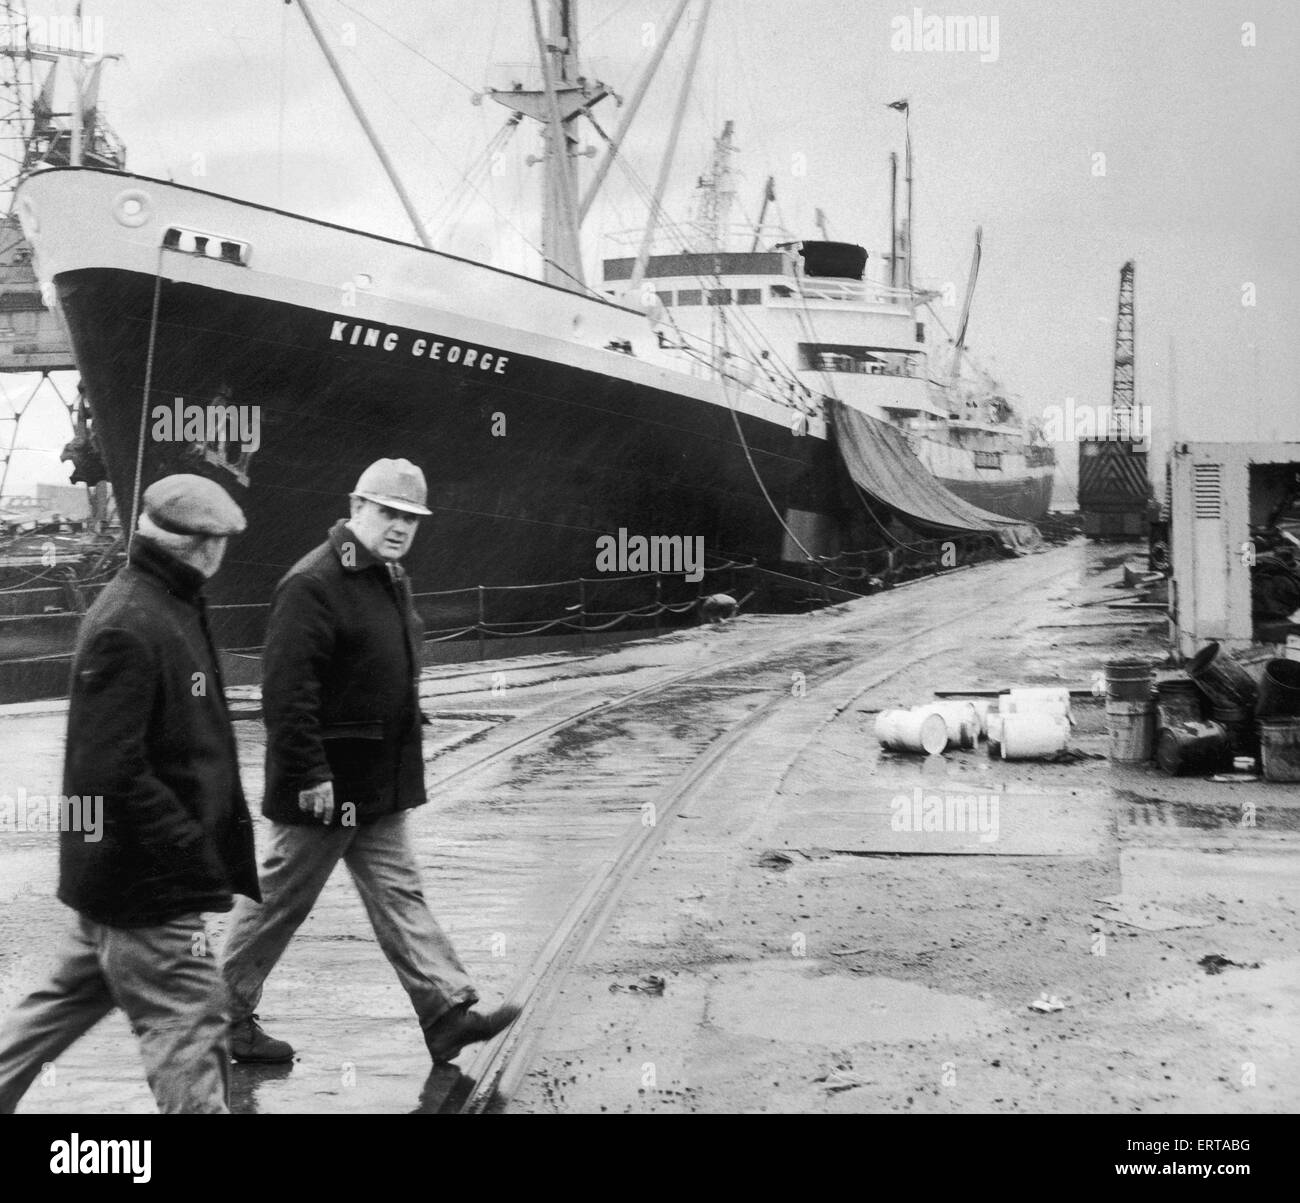 The King George berthed at Smith's Dock had to be evacuated along with the shipyard following a bomb threat. - Stock Image